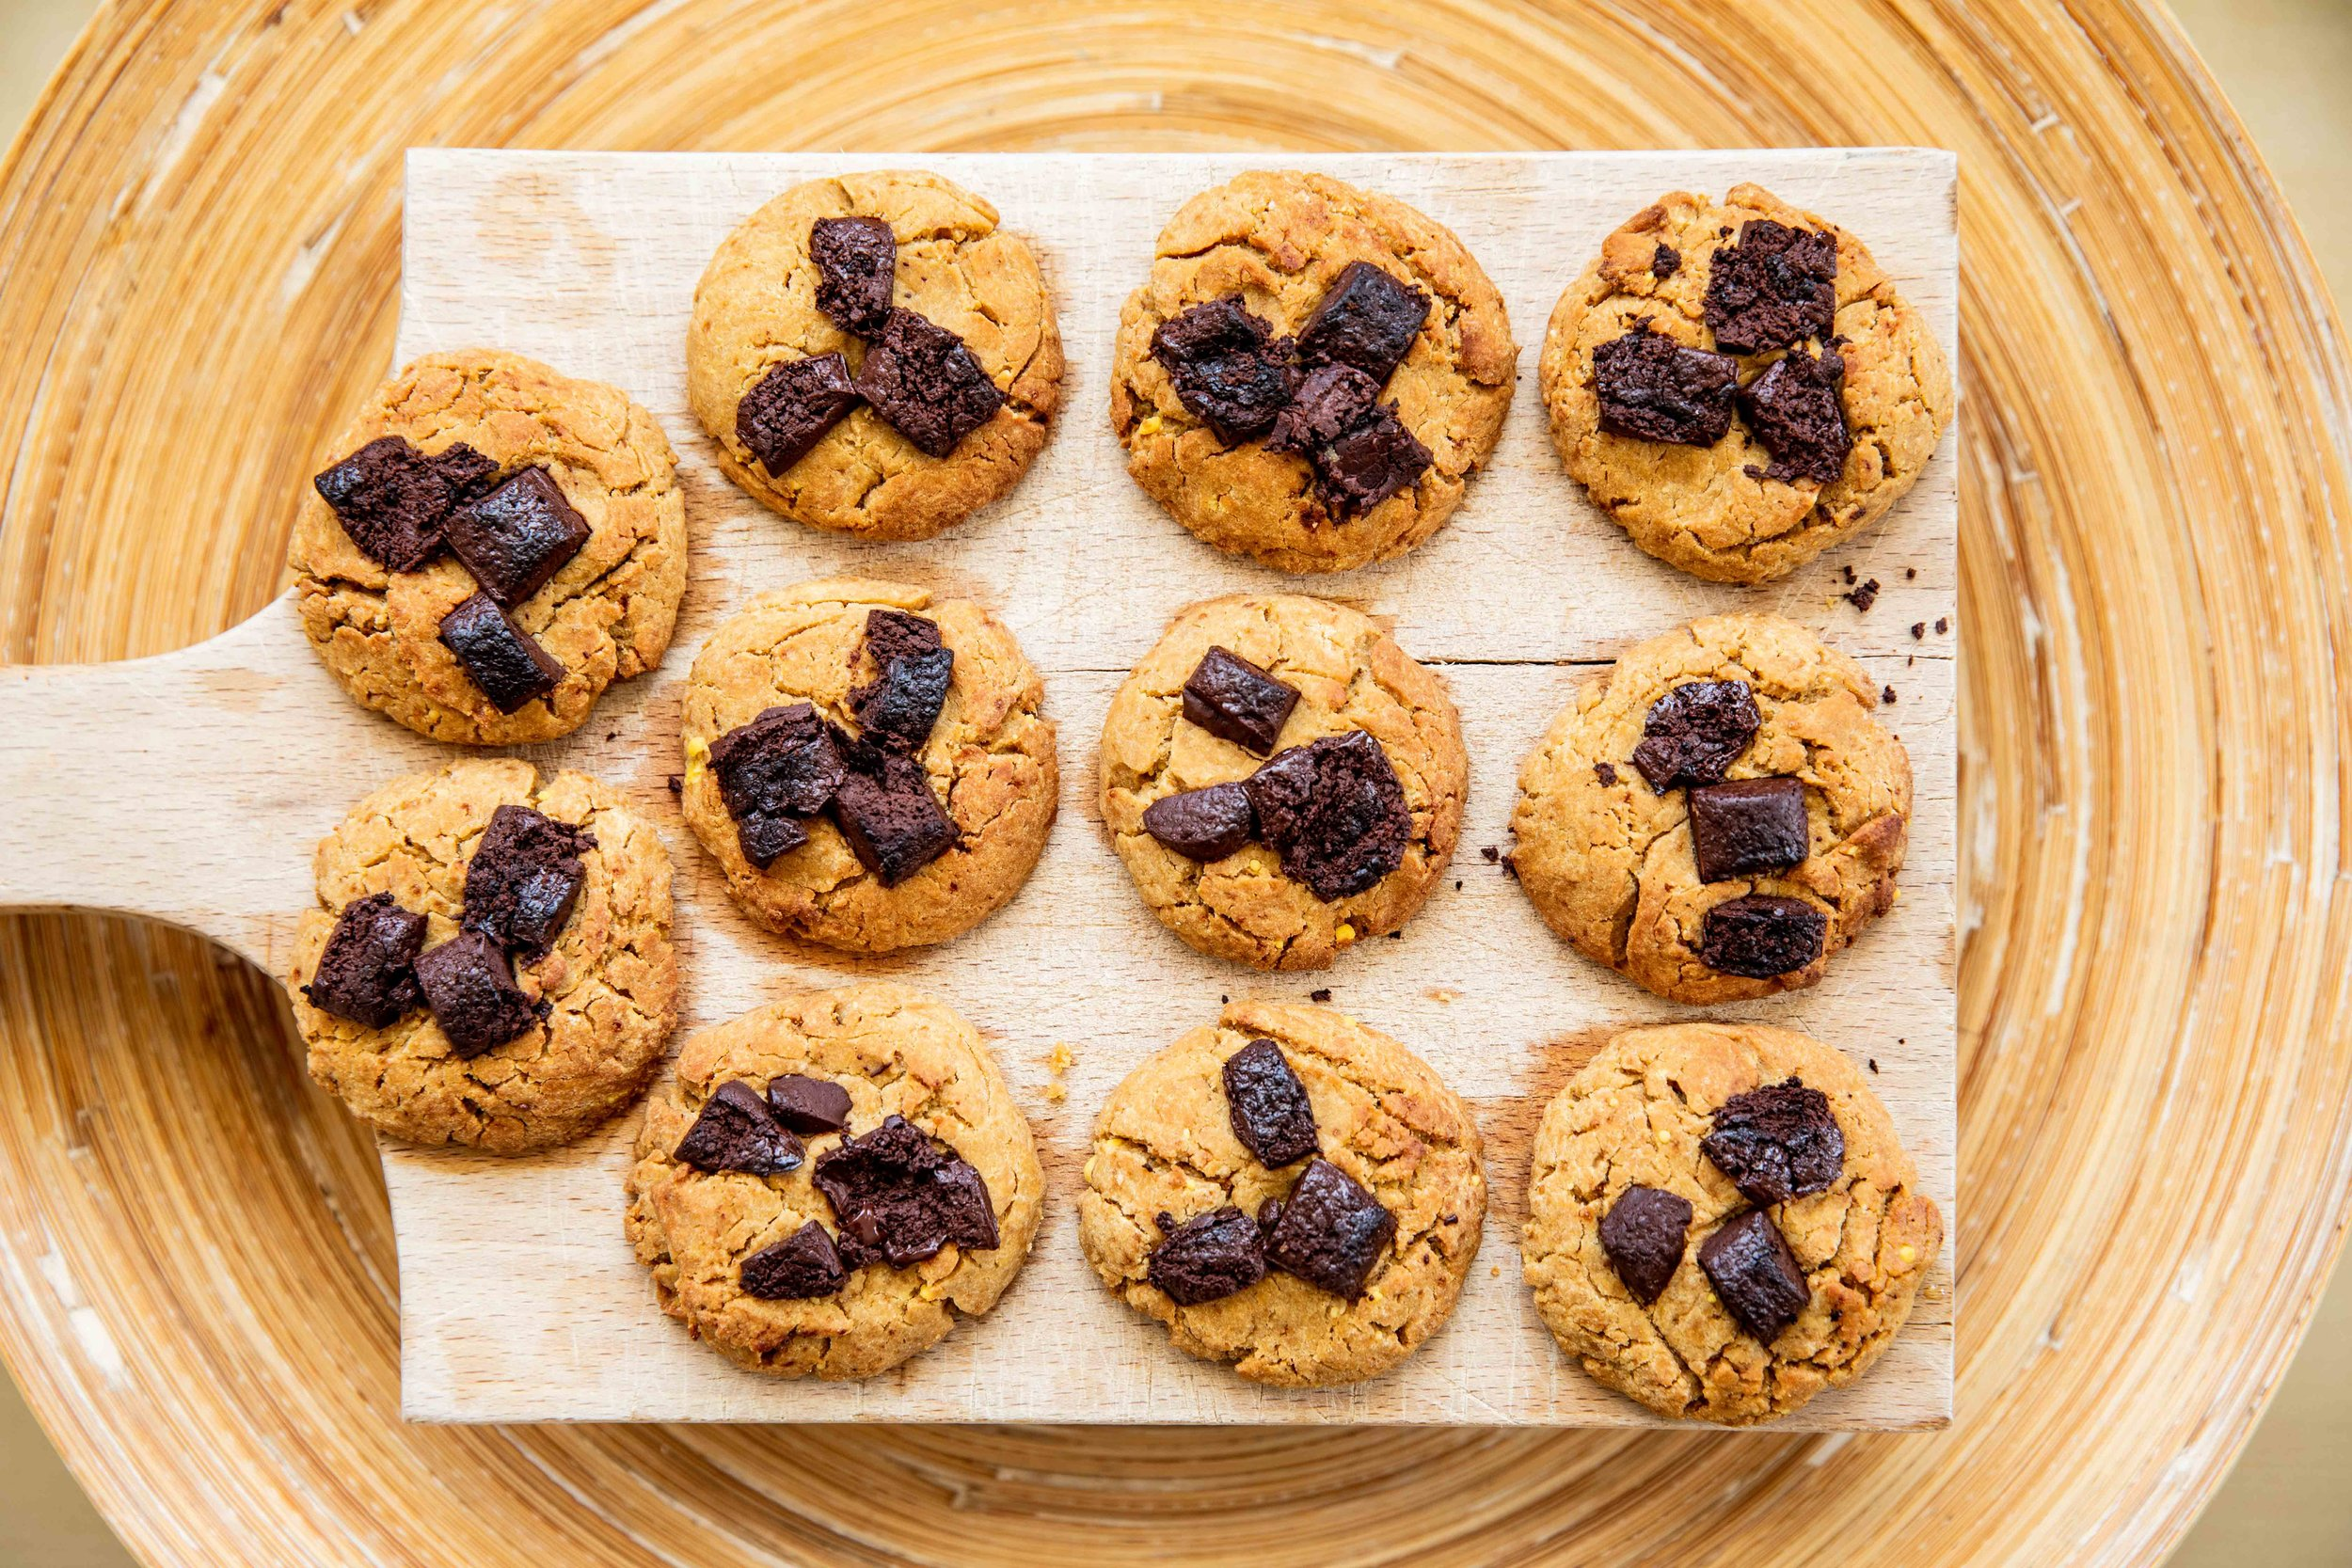 JasmineHemsley_ChickPeaCookies_NickHopperPhotography_2019-8492.jpg